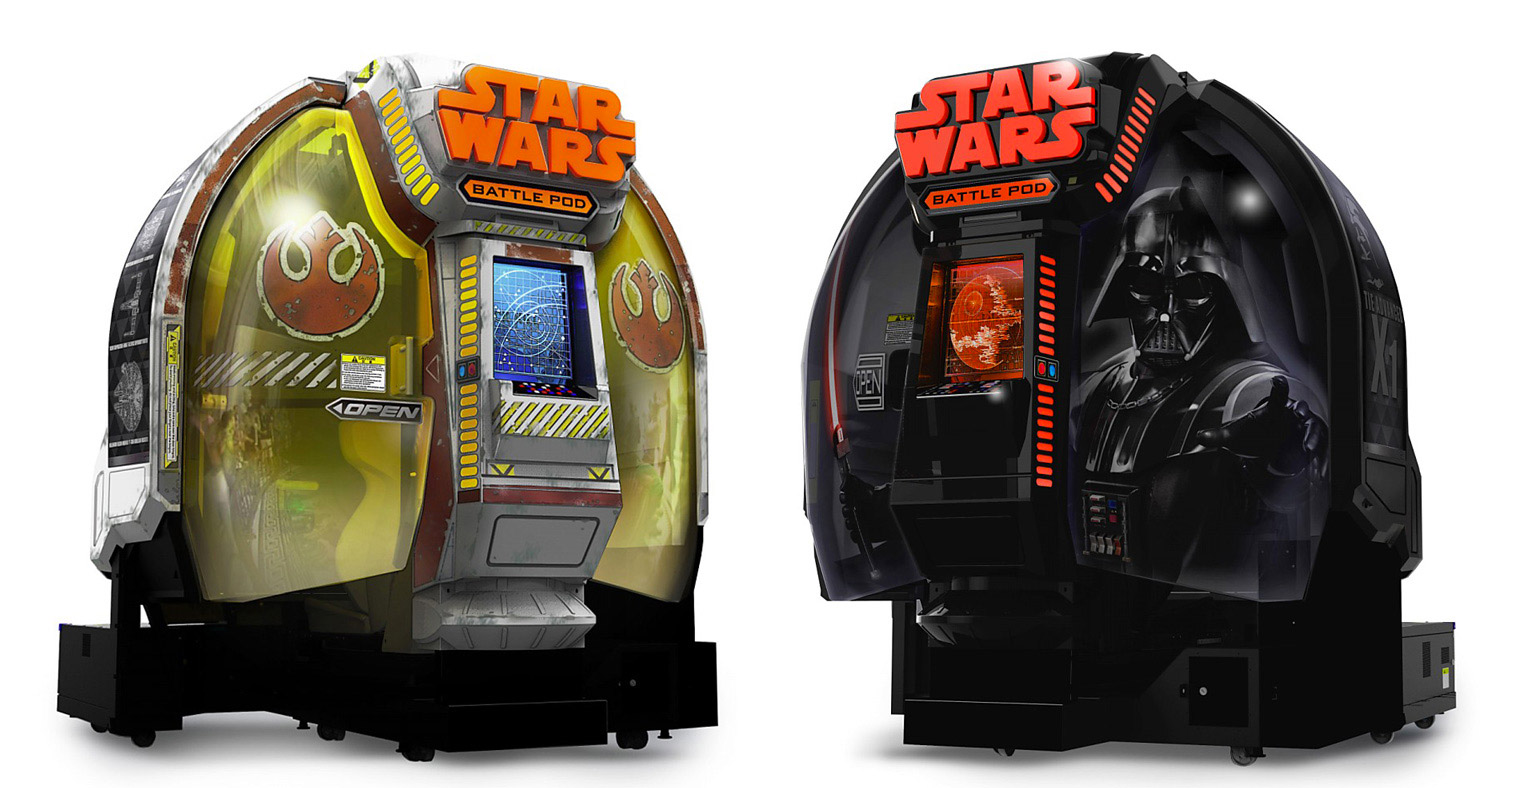 Buy a Star Wars Battle Pod for Your Living Room